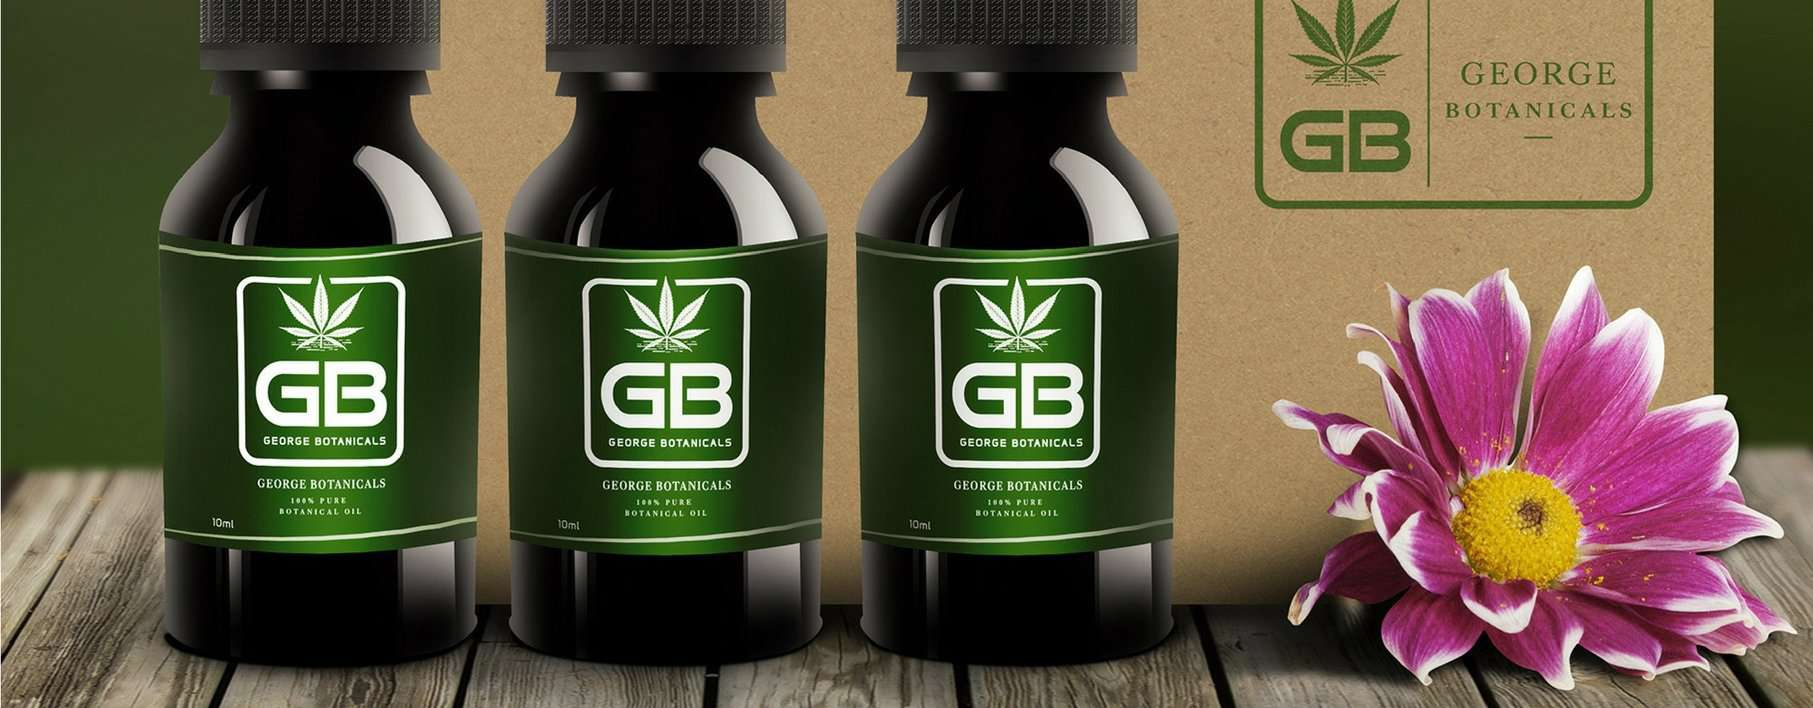 George Botanicals Coupon Code Online Discount Save On Cannabis